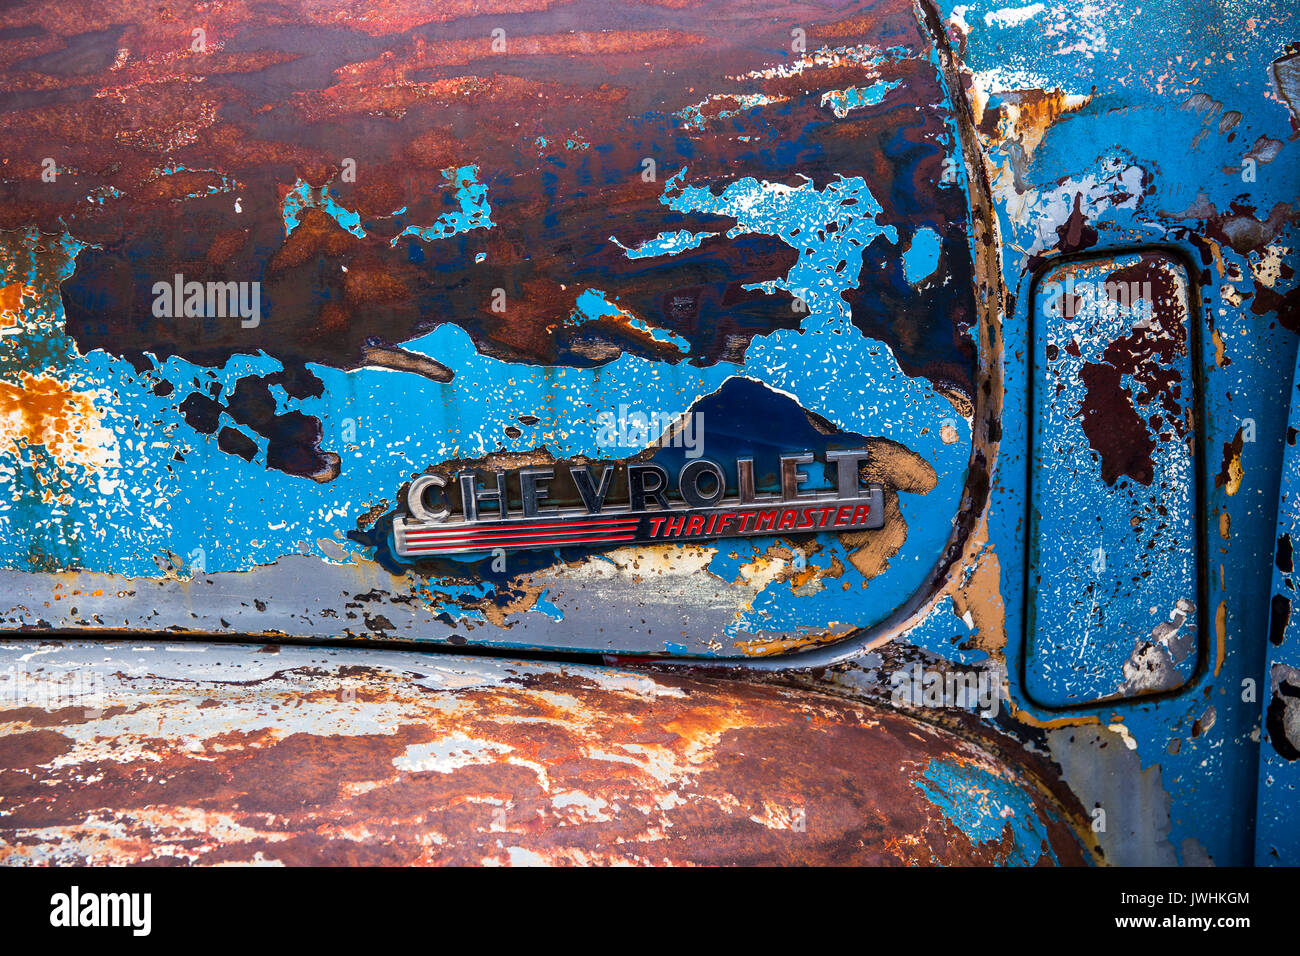 Bielsko-Biala, Poland. 12th Aug, 2017. International automotive trade fairs - MotoShow Bielsko-Biala. Chevrolet Thriftmaster caption on an old Chevrolet Thriftmaster. Credit: Lukasz Obermann/Alamy Live News - Stock Image